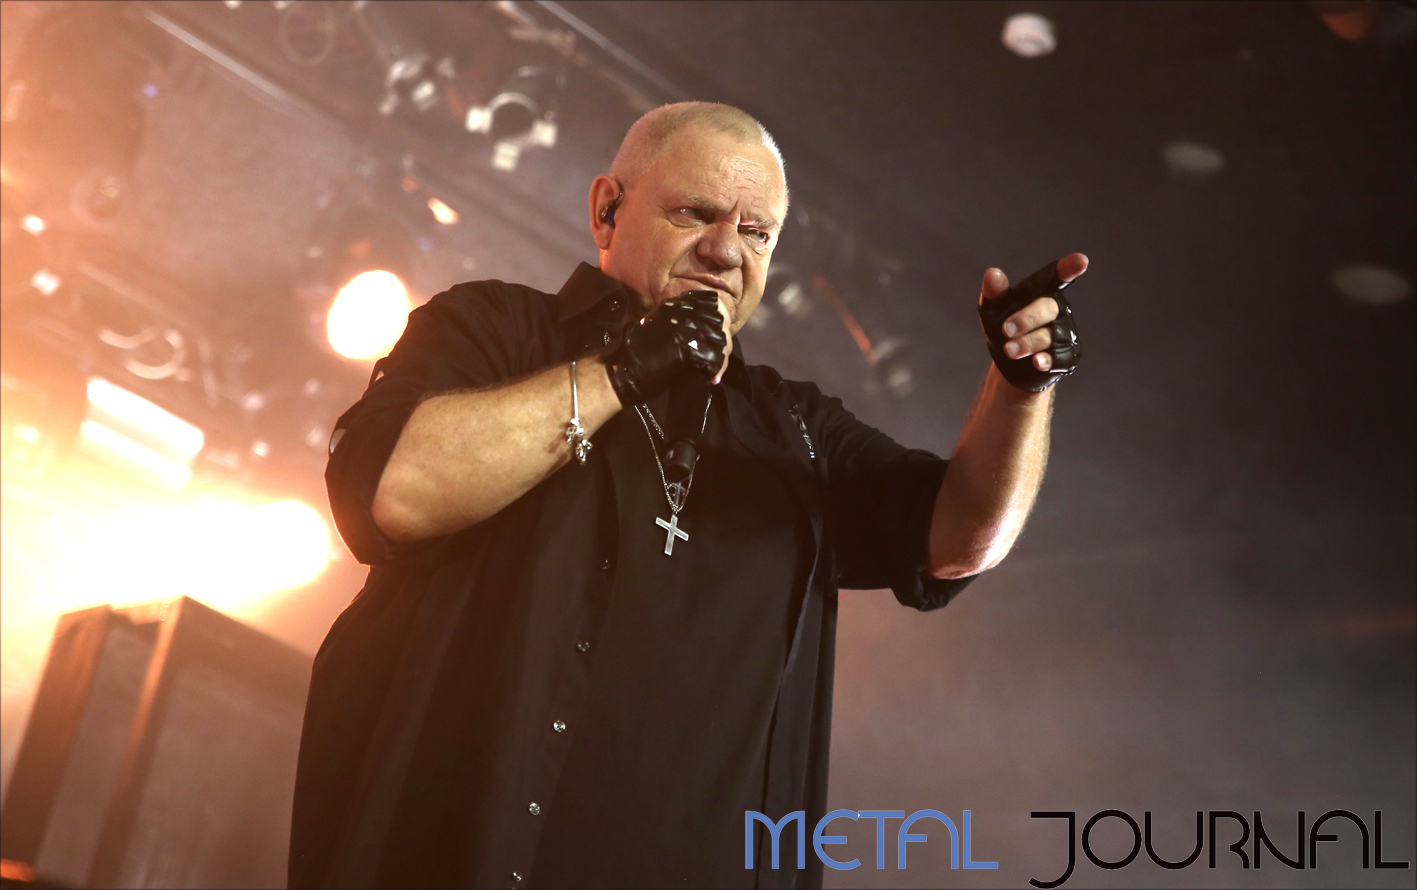 udo - metal journal villava 2019 pic 7